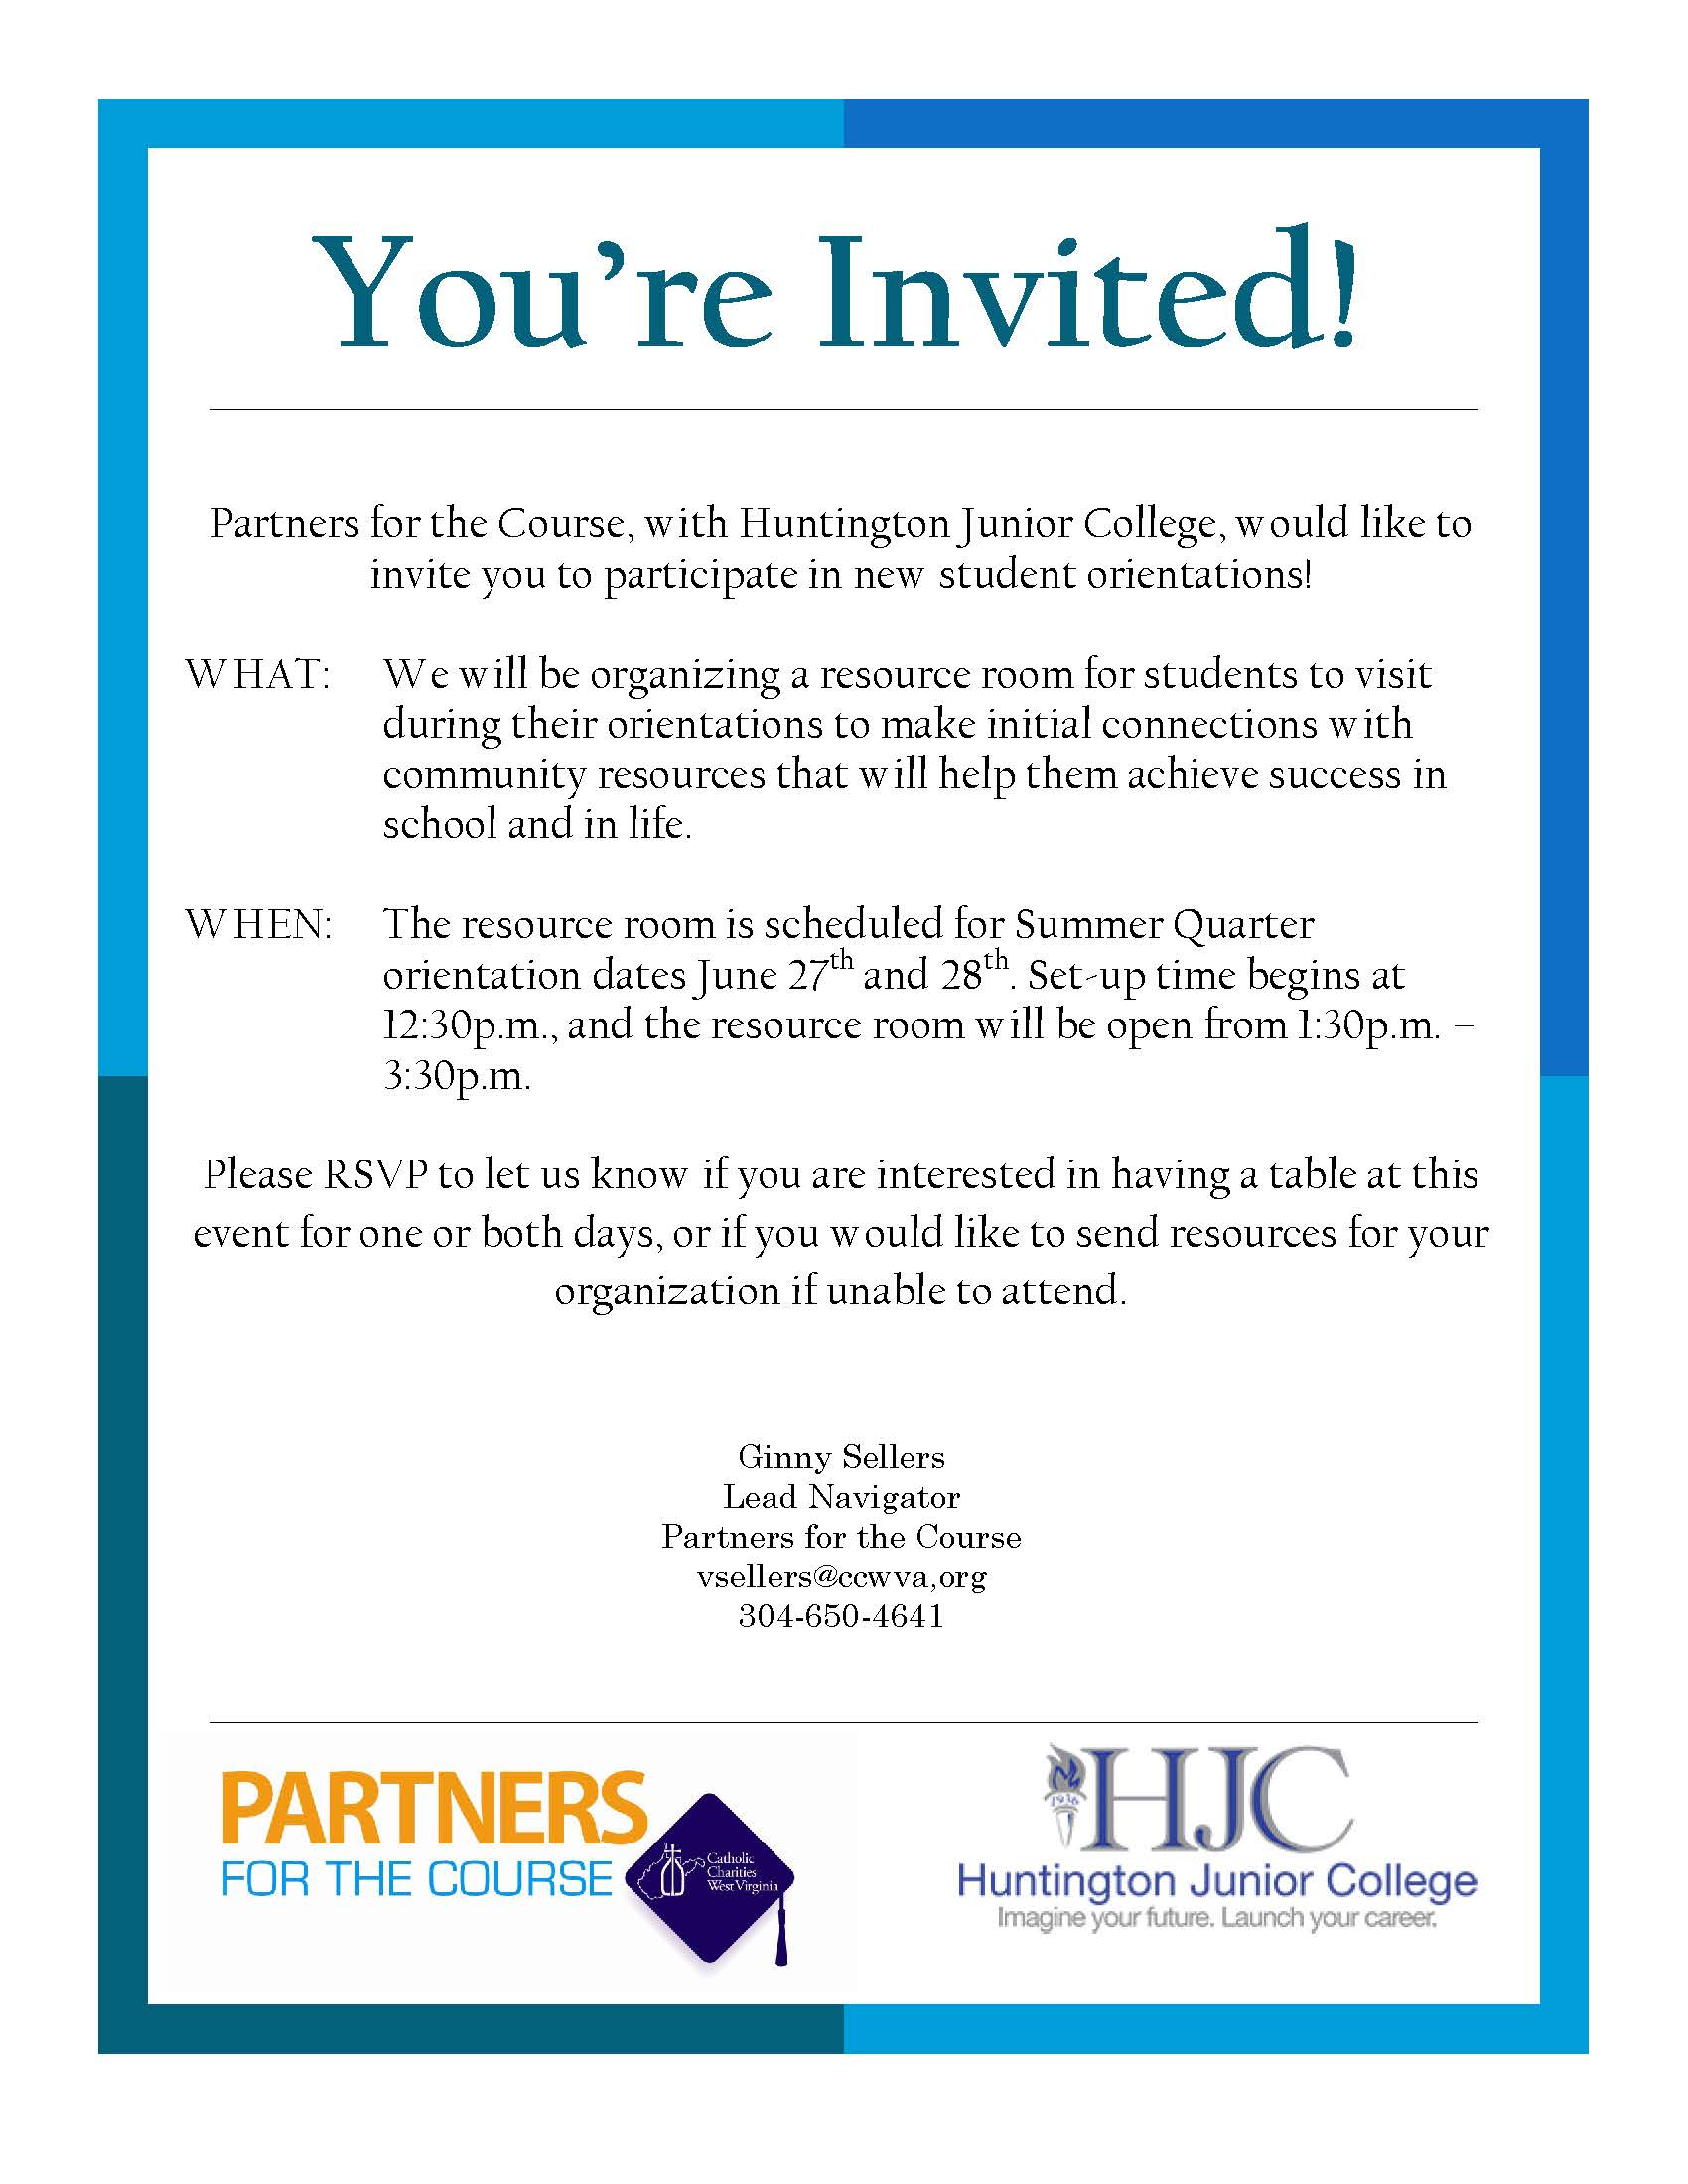 HJC Community Partner Orientation Invite